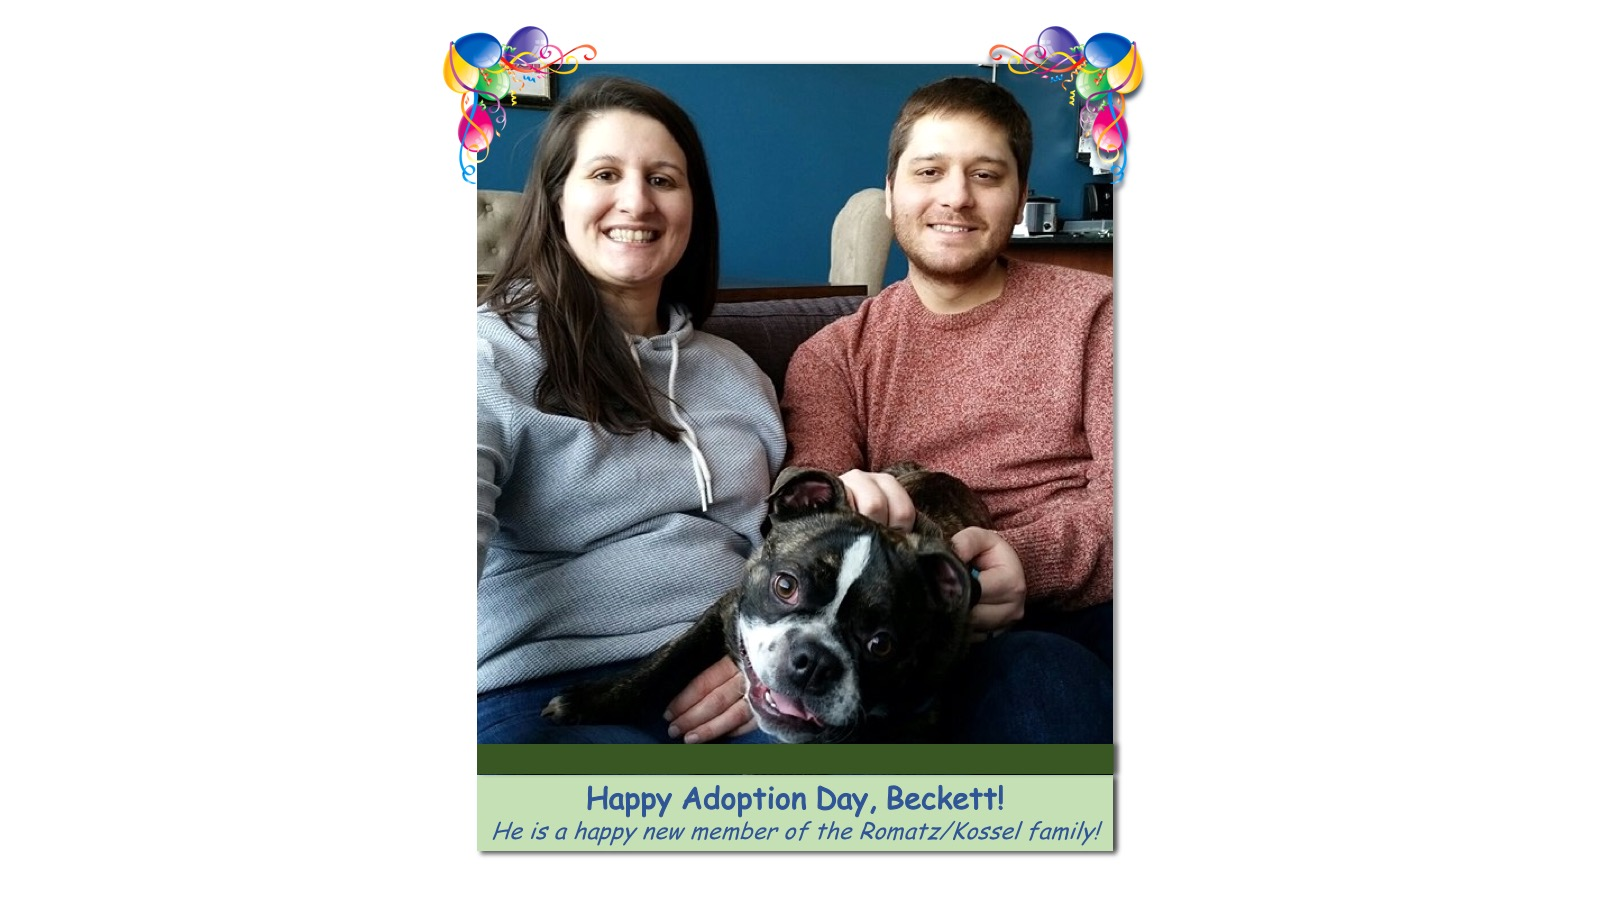 Becket_Adoption_Photo_2018.jpg